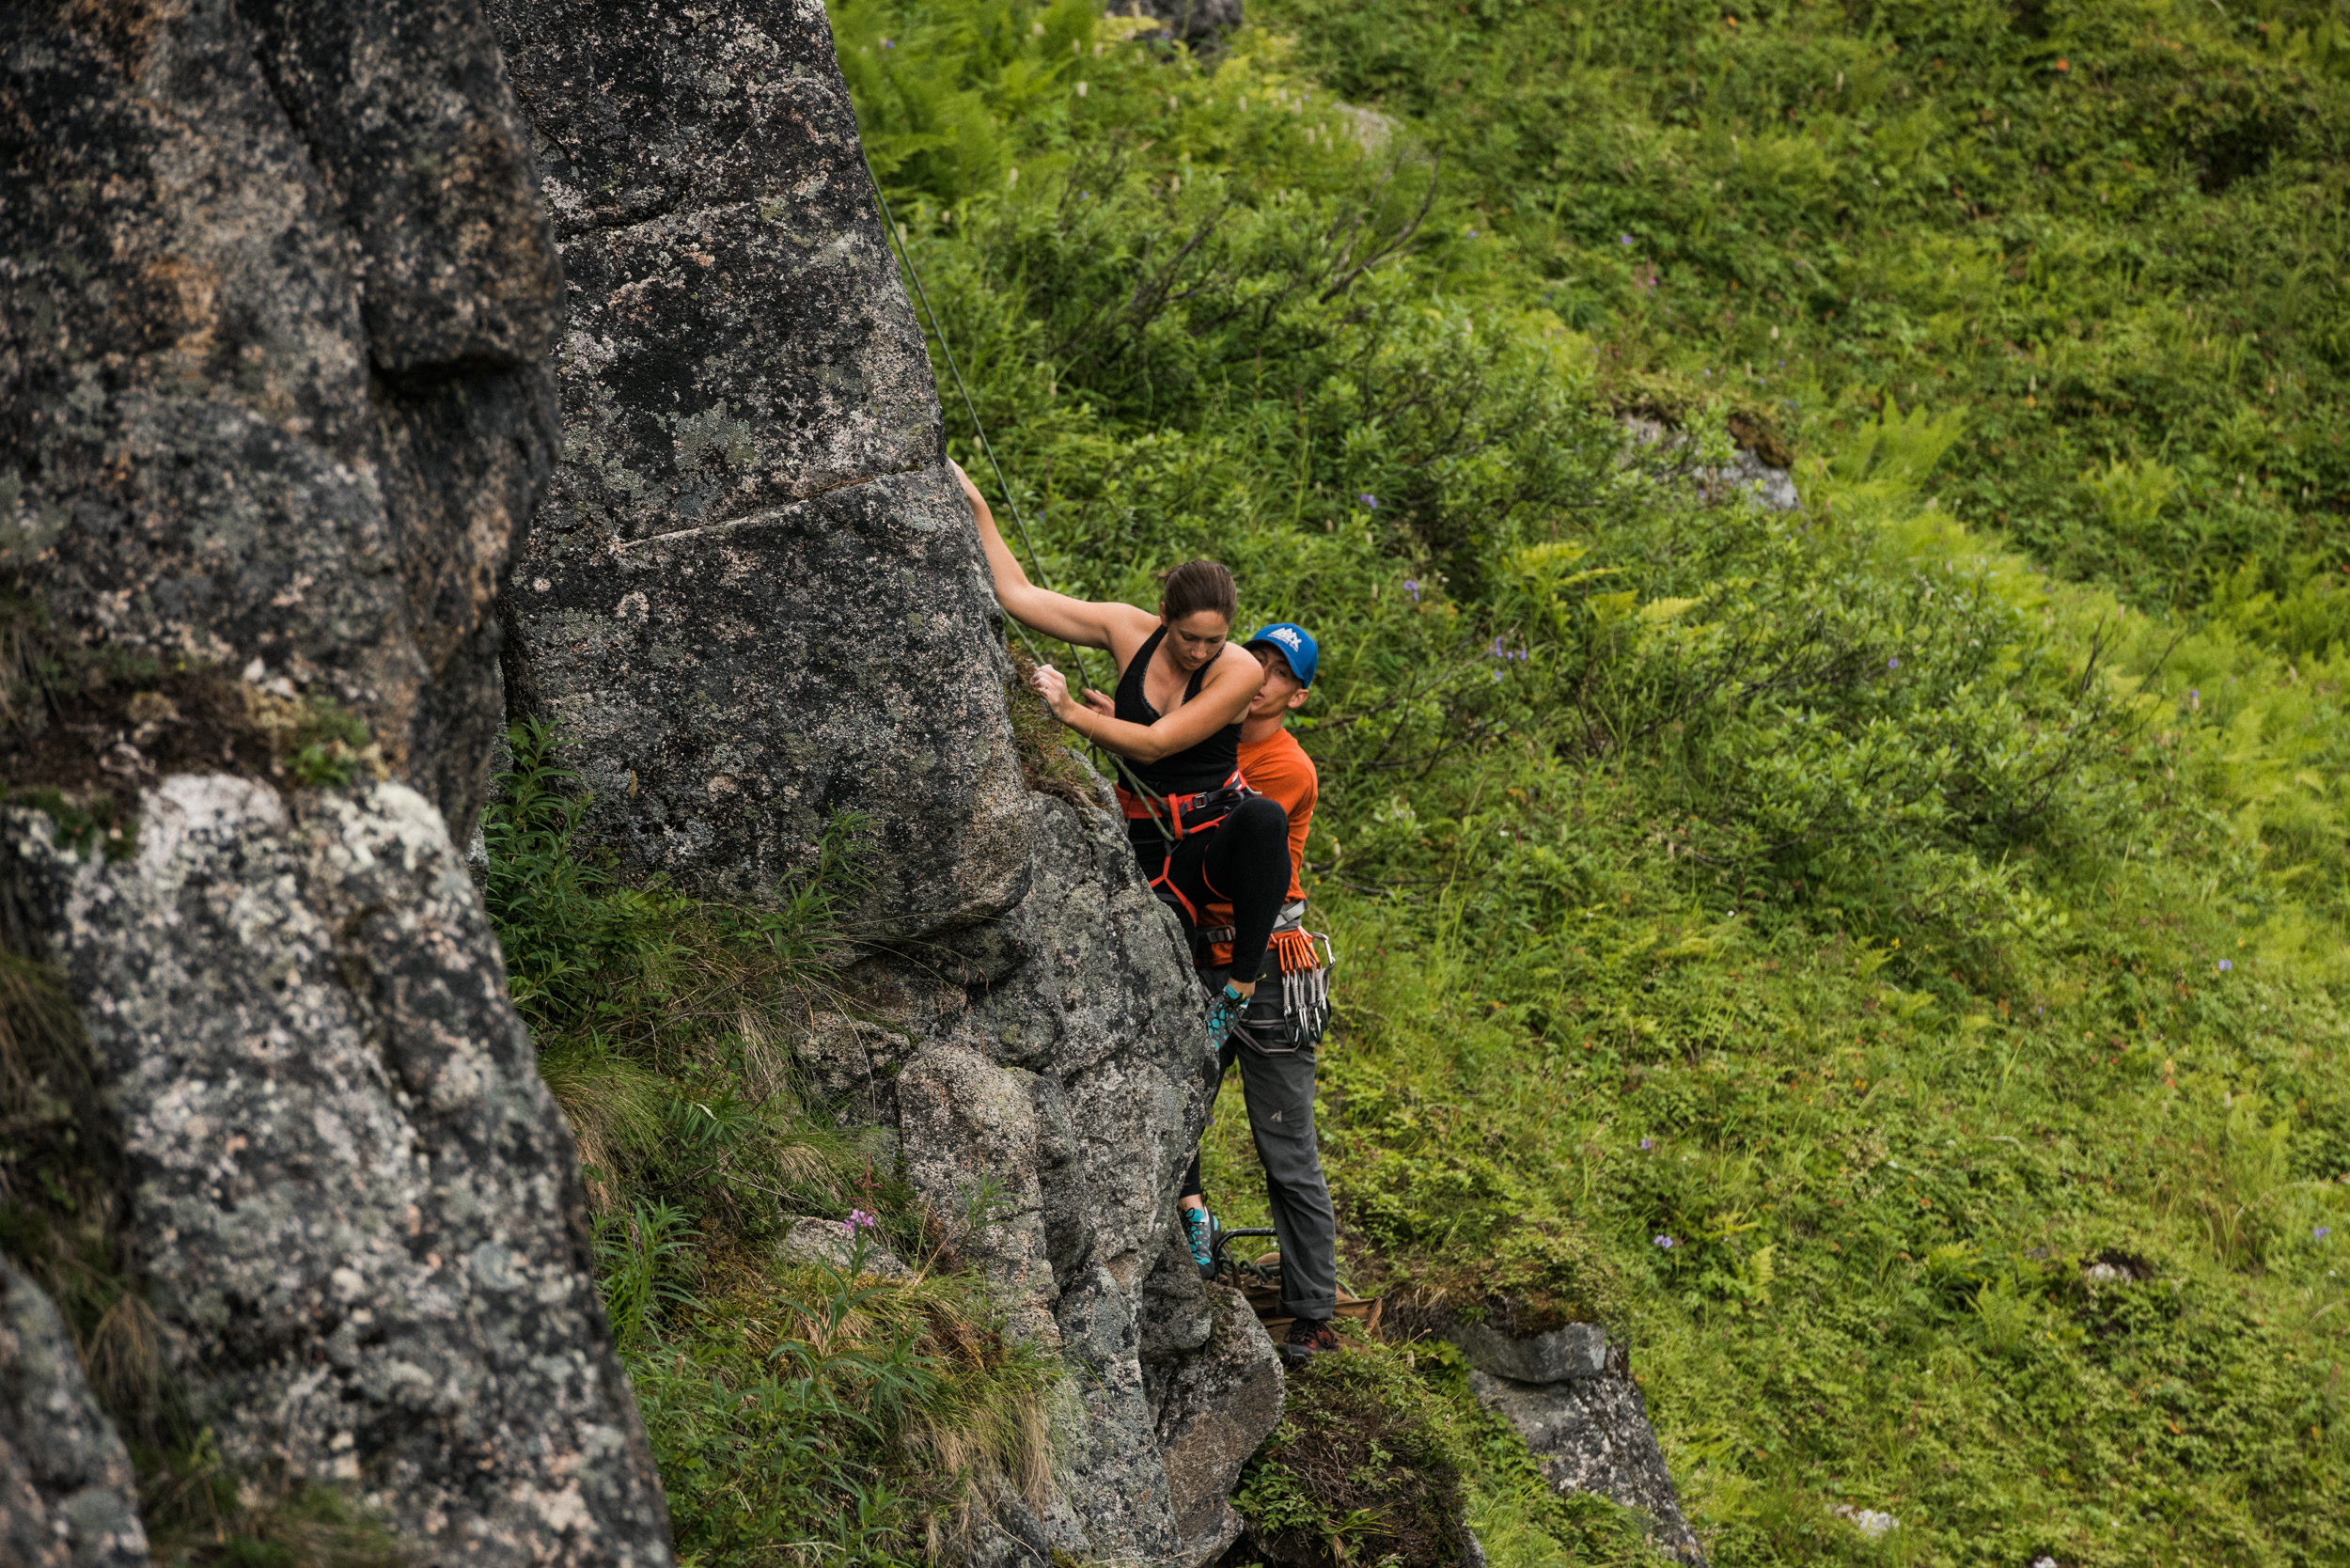 TaraShupe_Photography_Alaska_RockClimbing_HatchersPass_Travel_Photographer_Women_Adventure_034.jpg